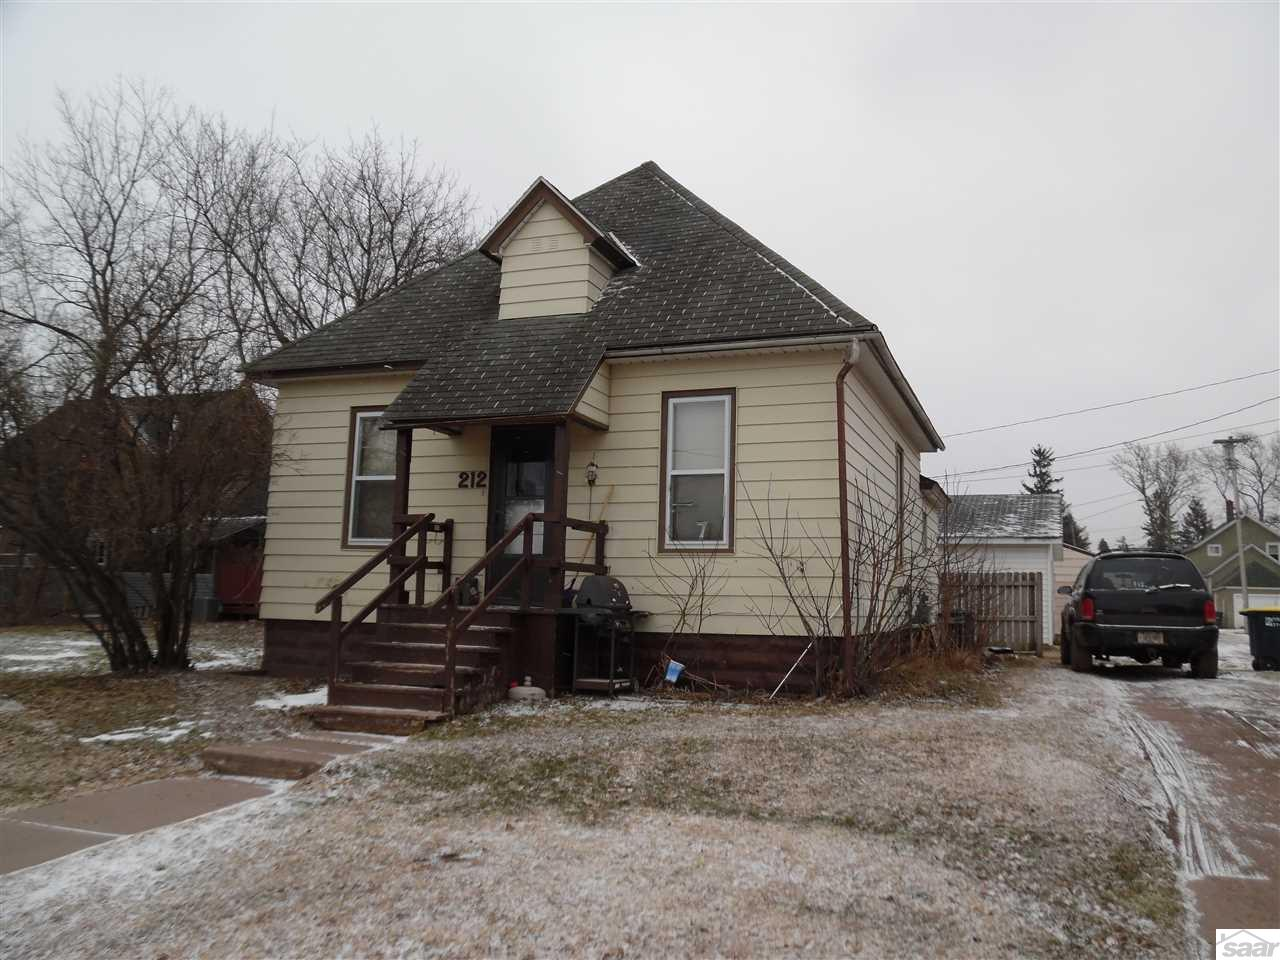 Photo of 212 E 7th St  Ashland  WI